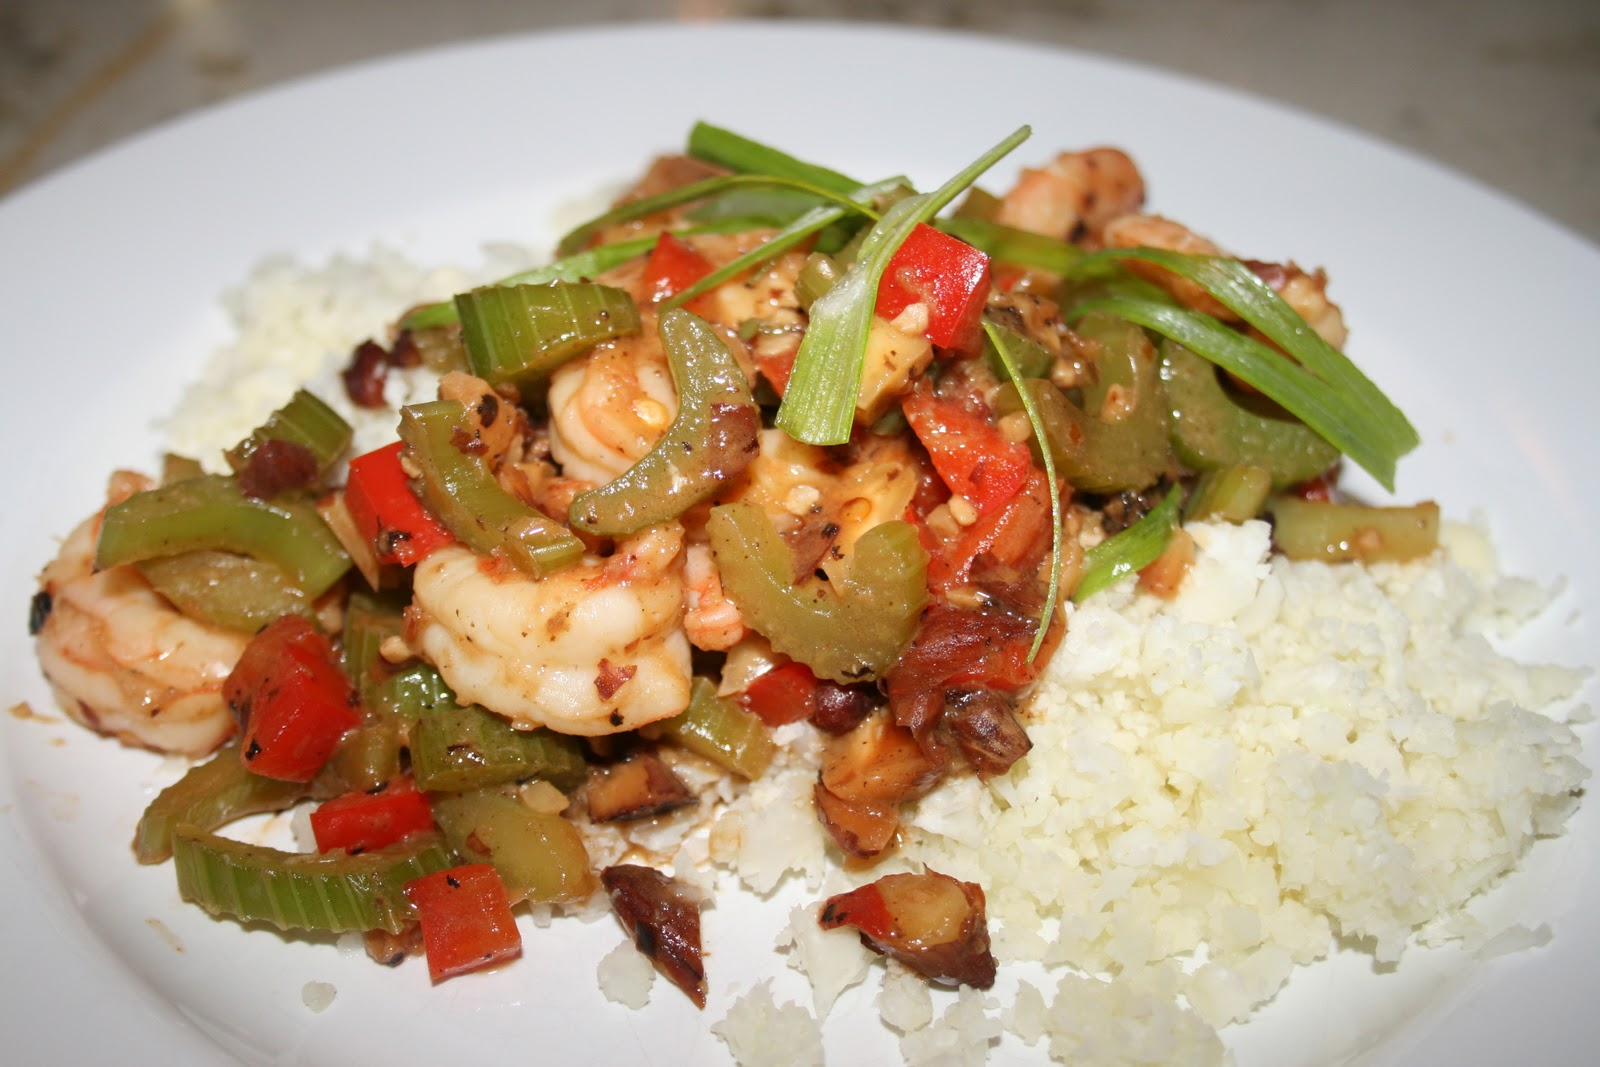 ... Table | Paleo Recipes, meal plans, and shopping lists: Kung Pao Shrimp